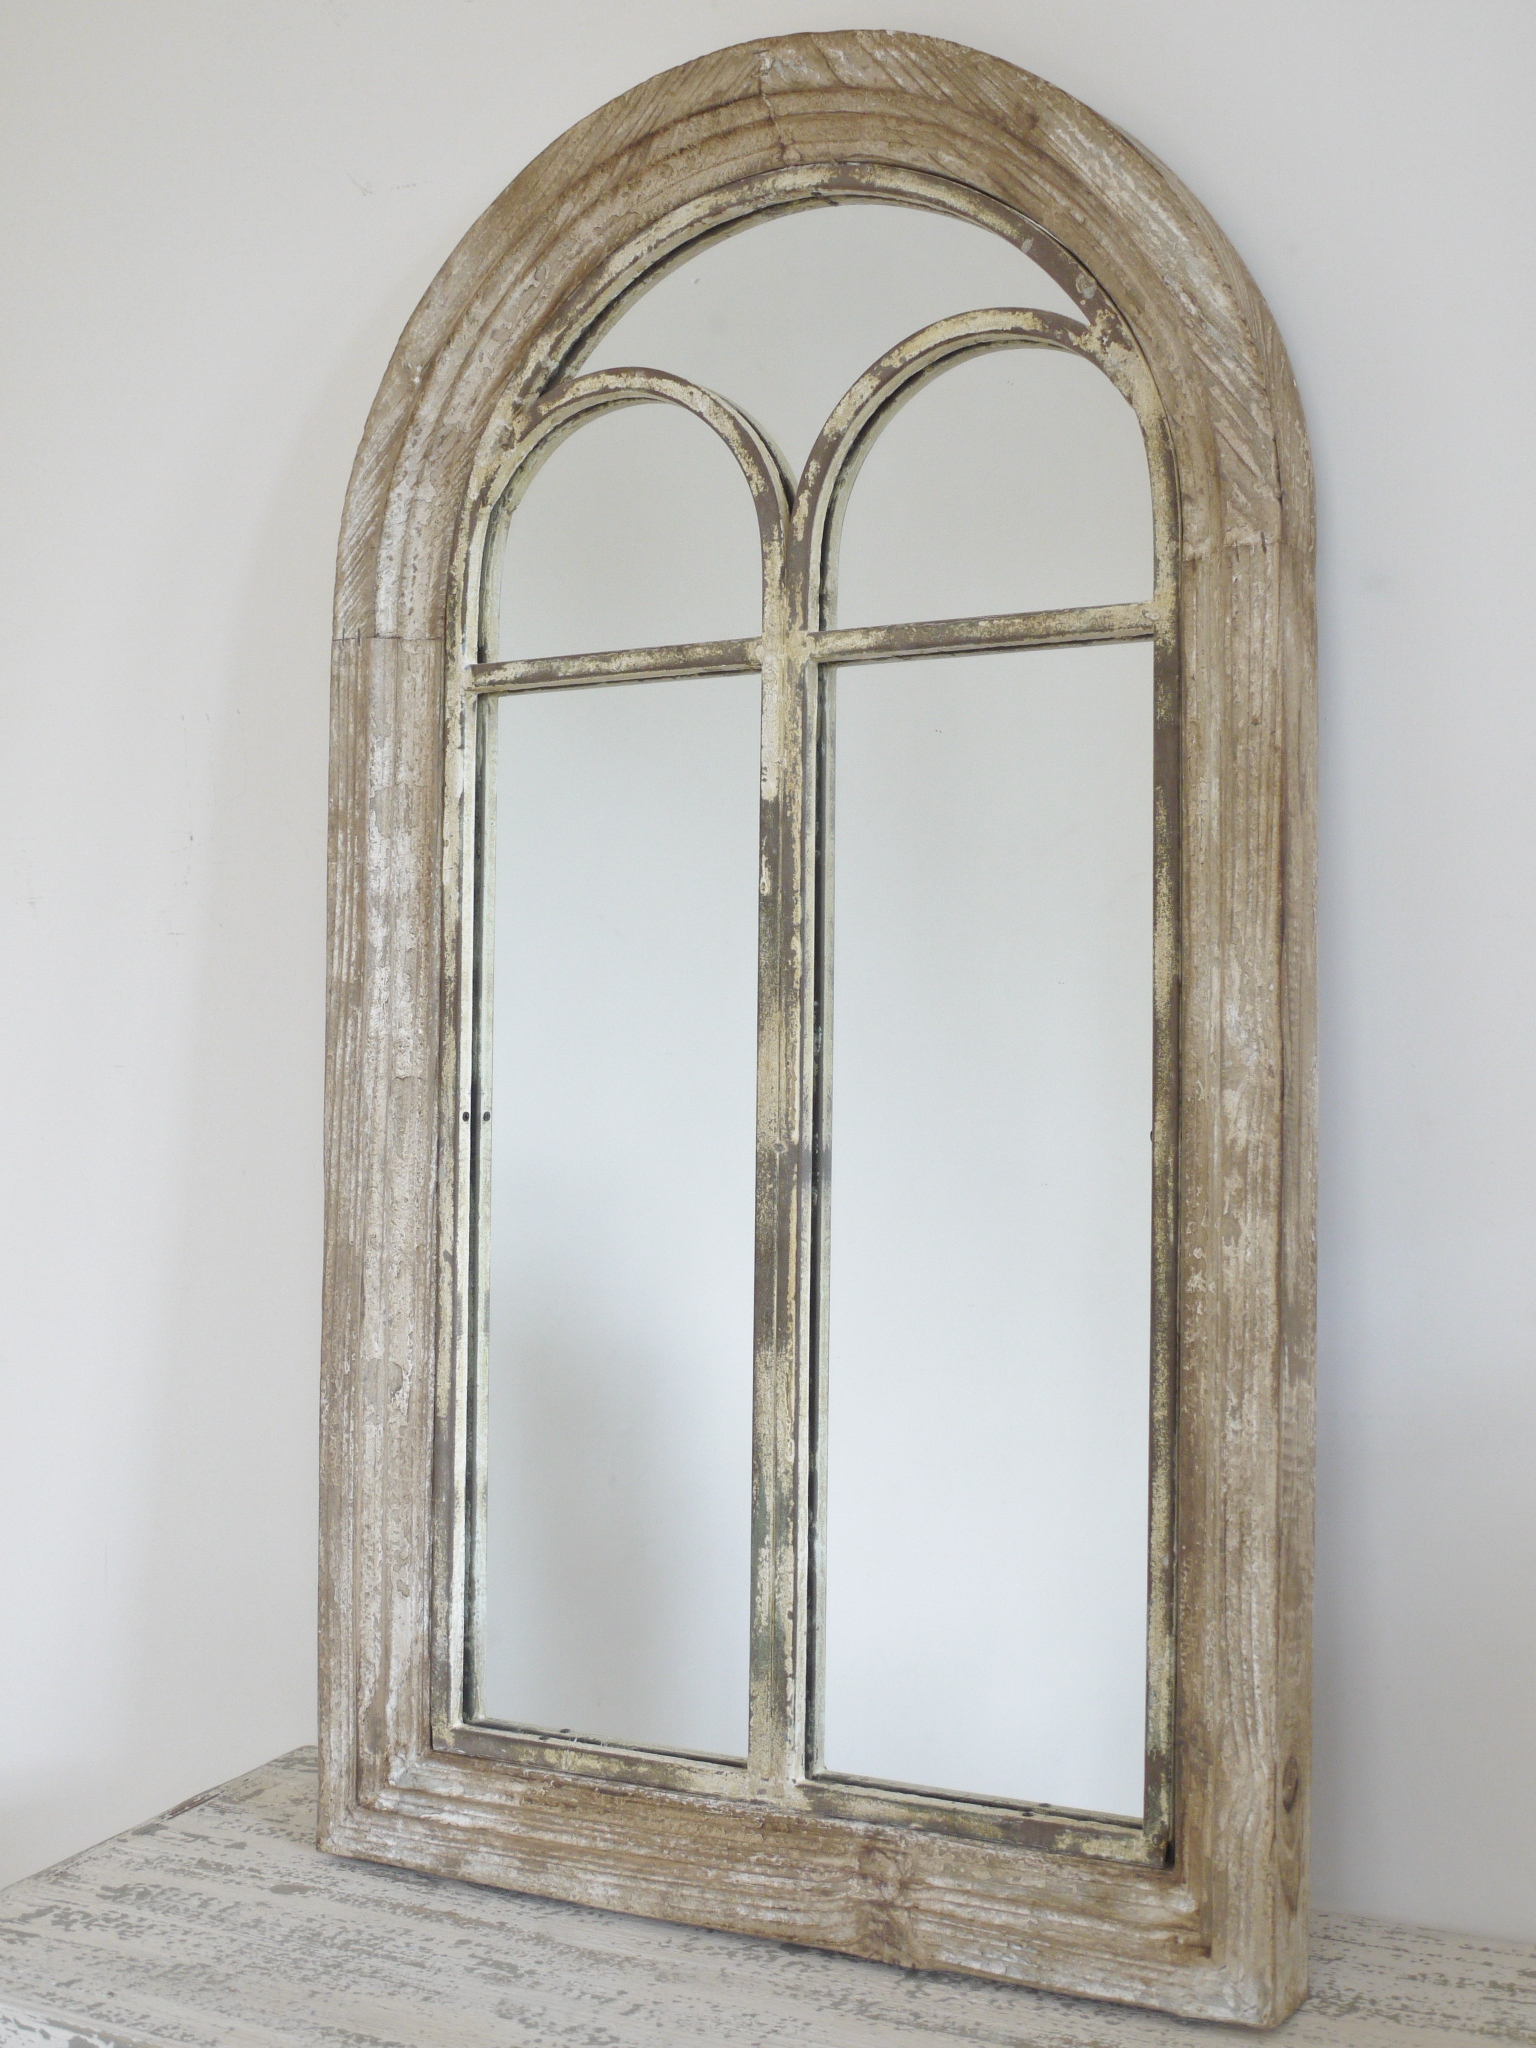 Mirrors Divine Interiors And Gifts Intended For Gothic Style Mirrors (Image 8 of 15)